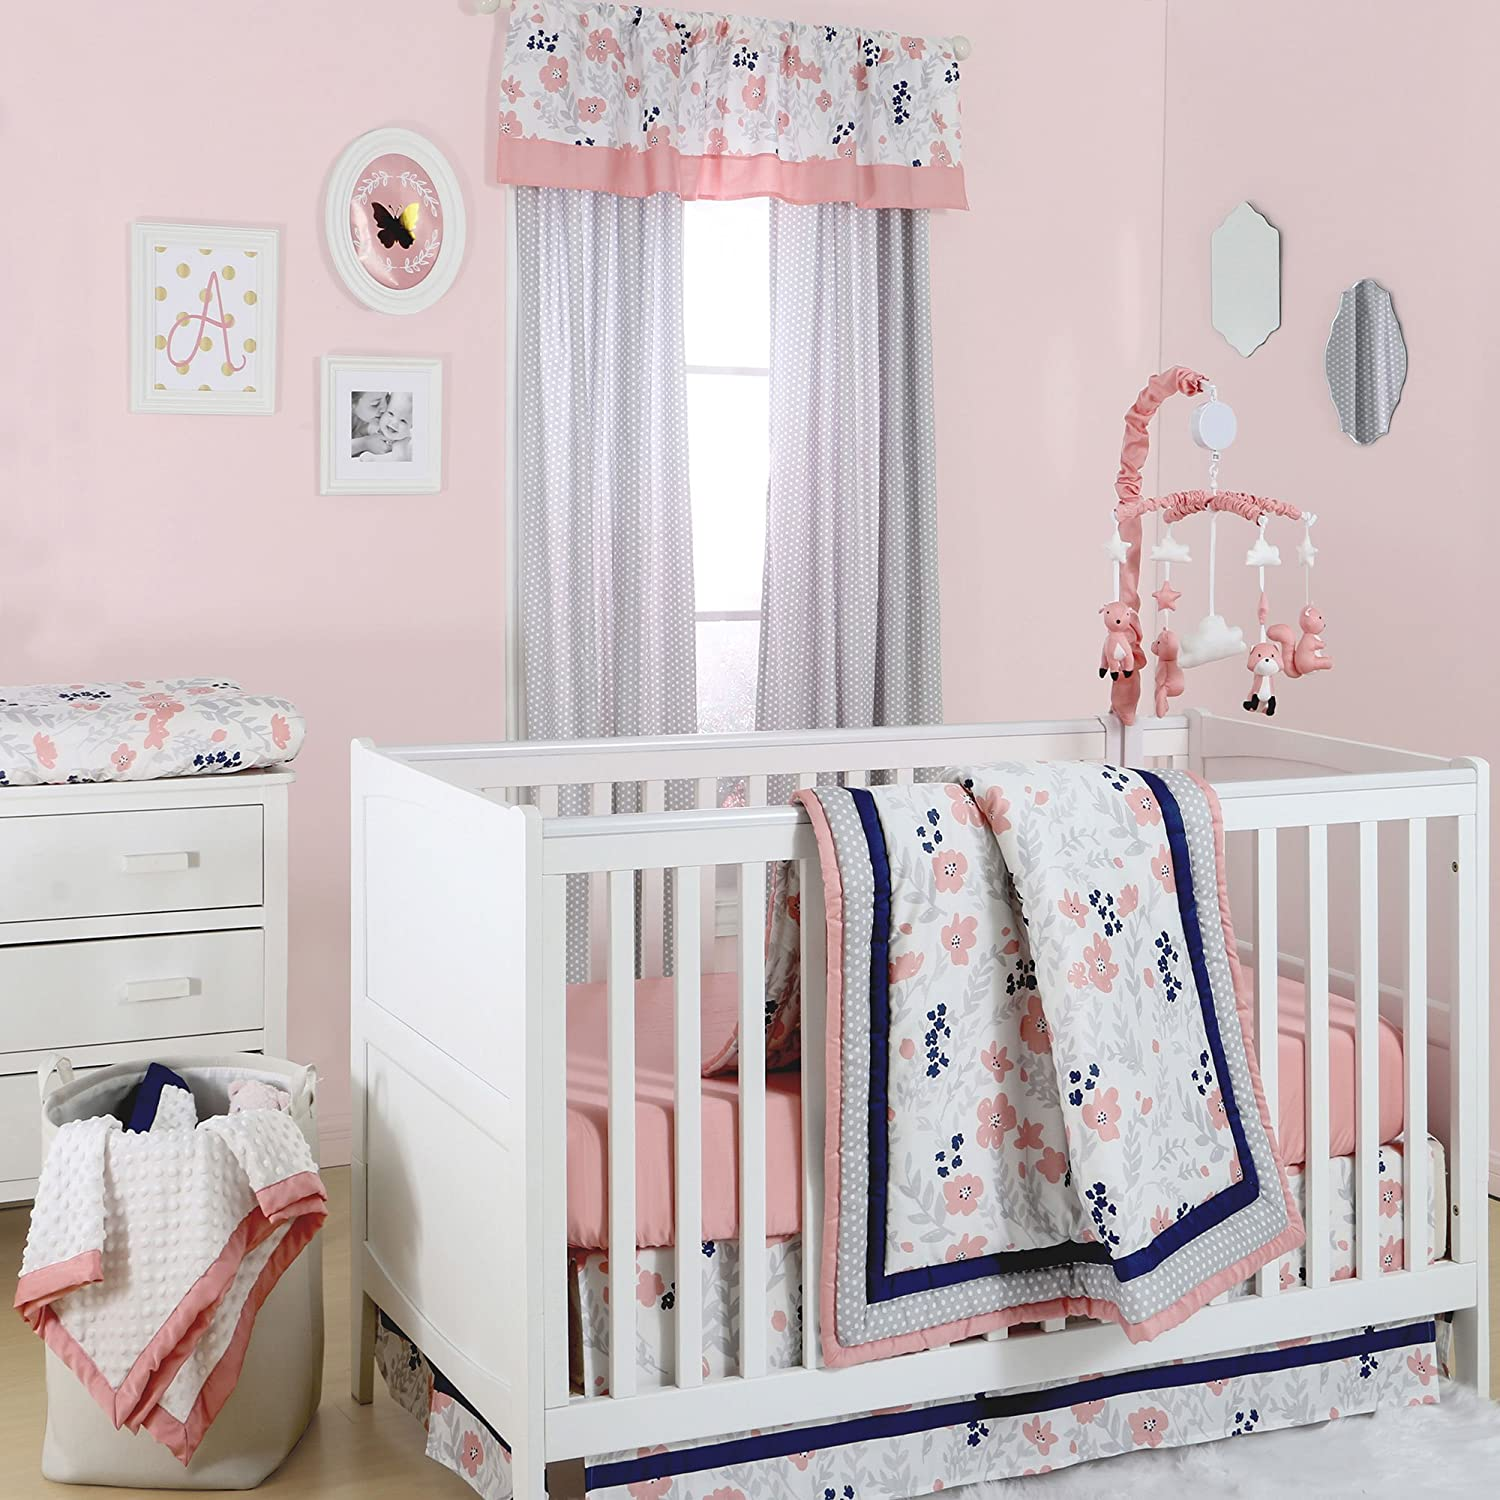 Coral Pink, Grey and Navy Floral 4 Piece Crib Bedding Set by The Peanut Shell by The Peanut Shell   B01HQR6UZI